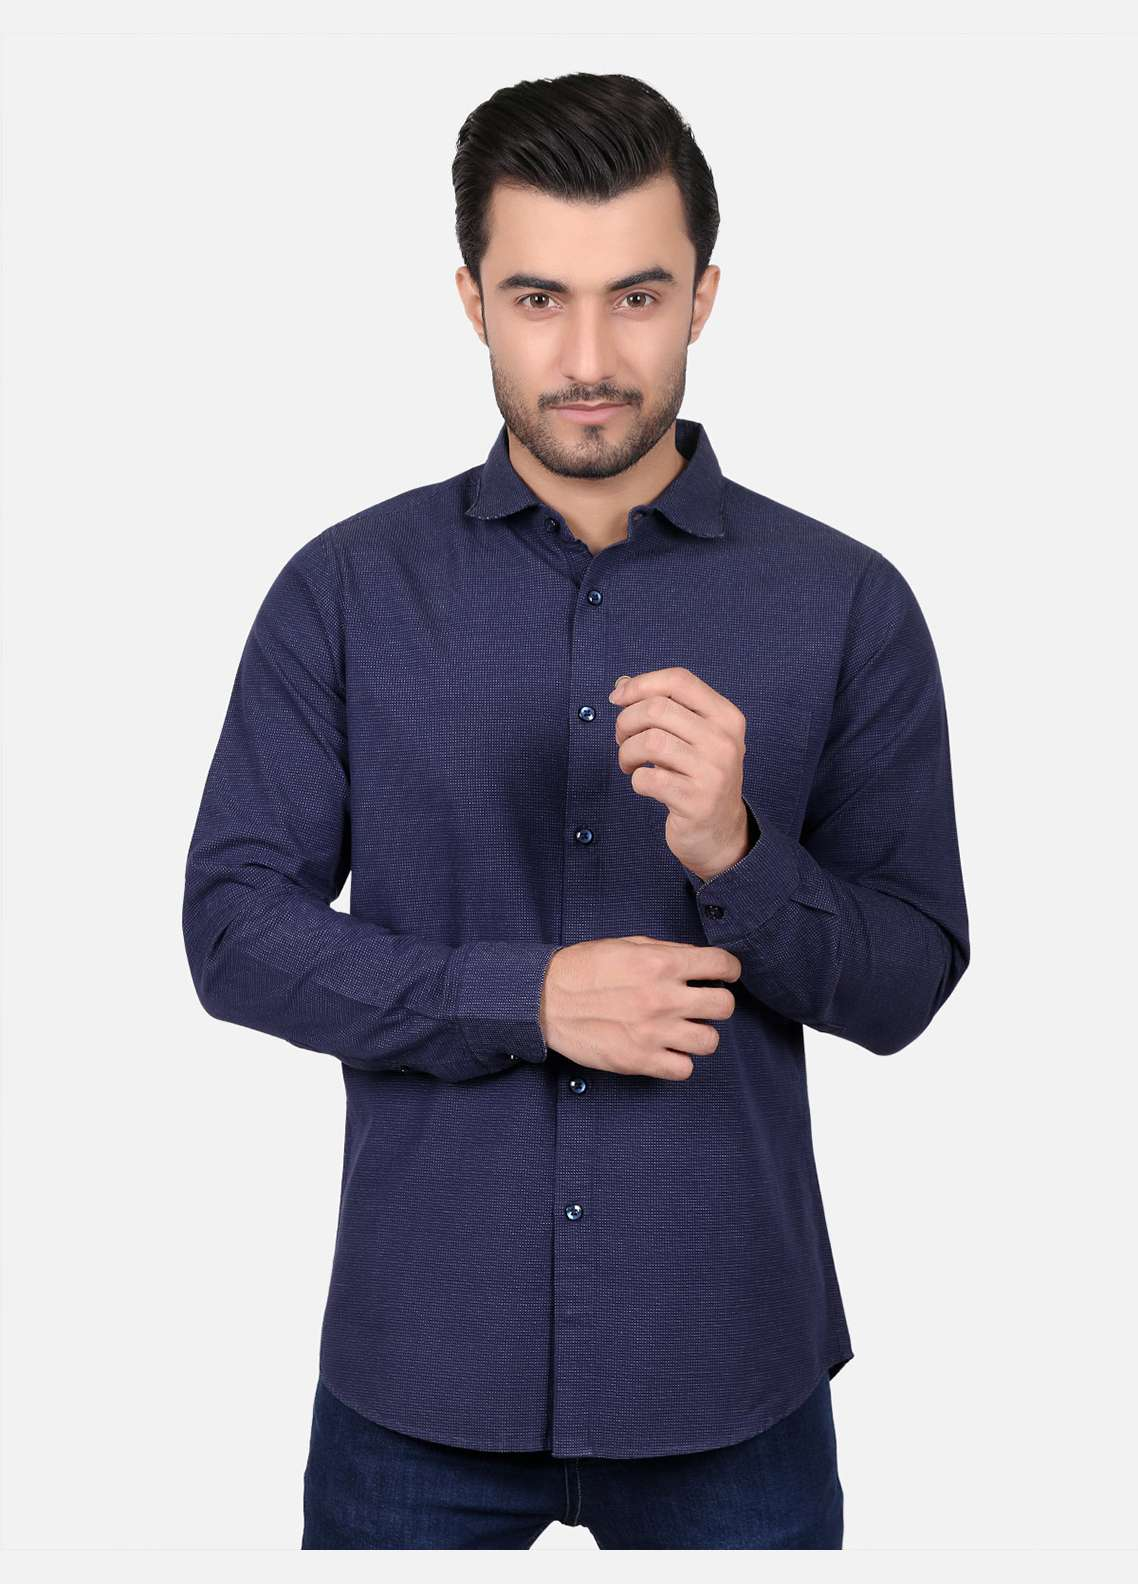 Furor  Casual Shirts for Men - Blue FRM18CS 31210